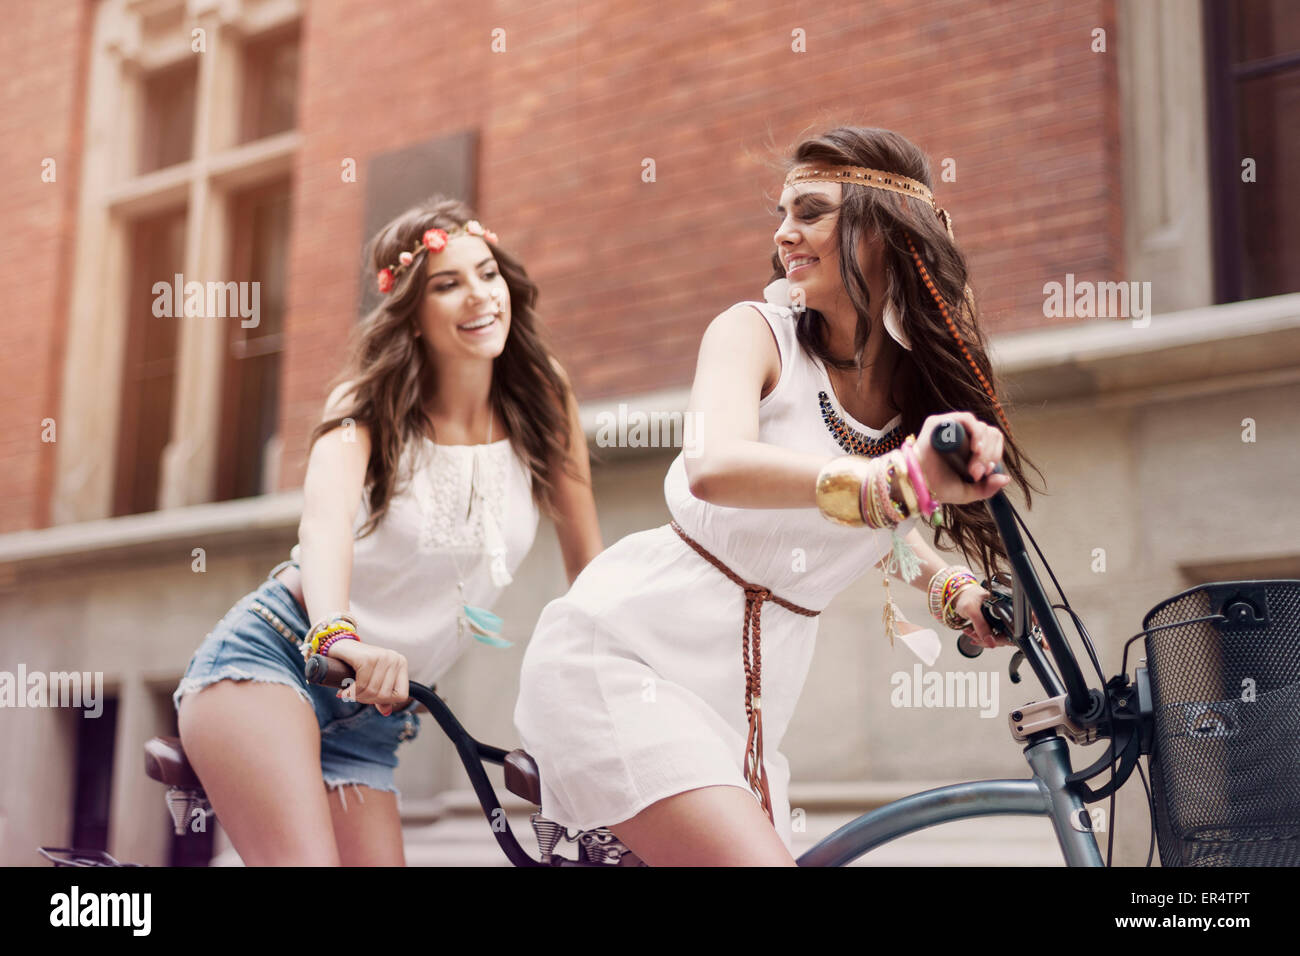 Retro portrait of two friends riding tandem bicycle. Krakow, Poland - Stock Image